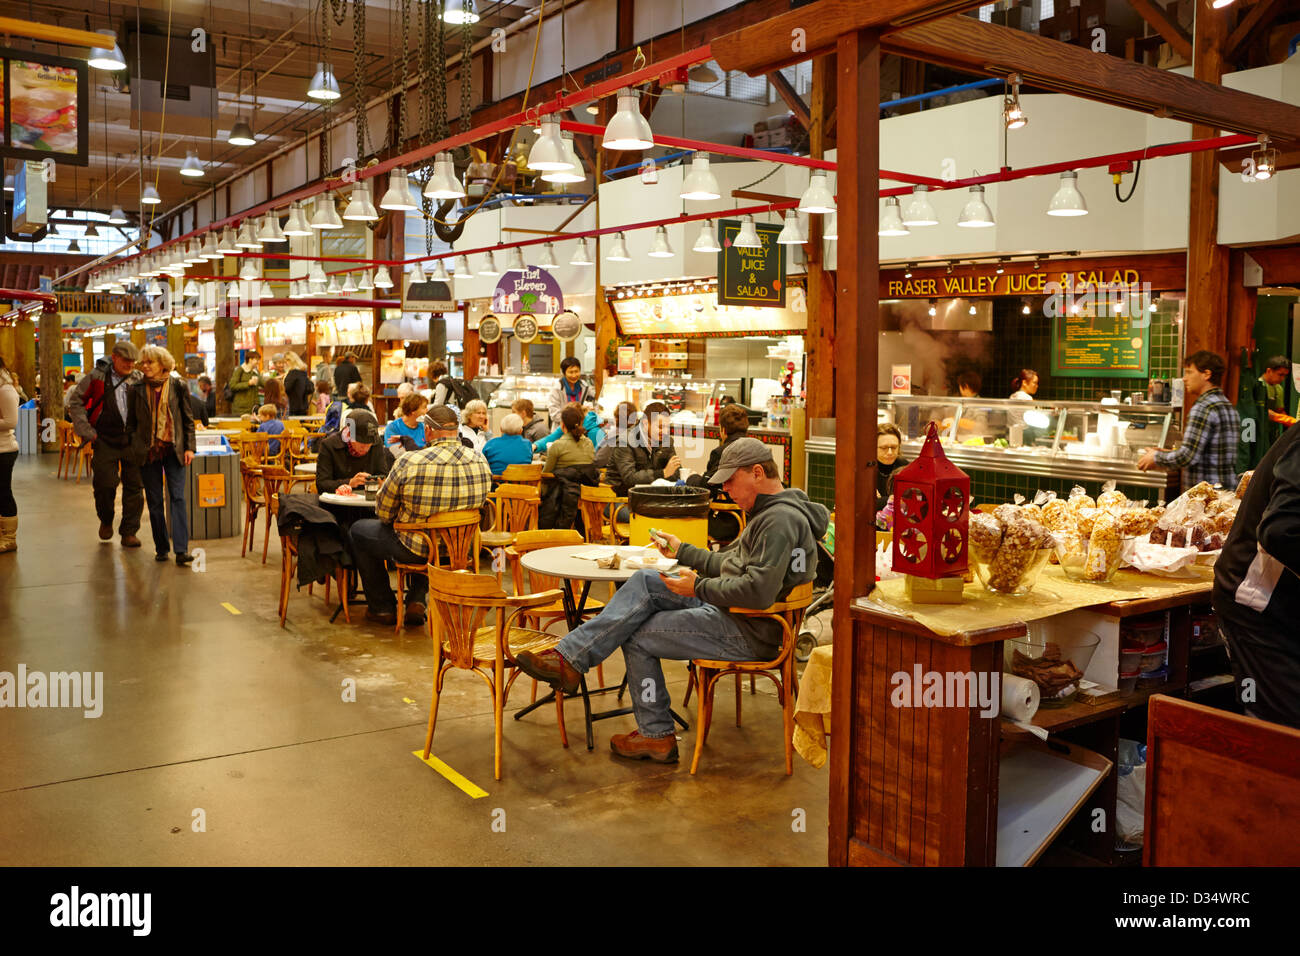 food court inside granville island public market Vancouver BC Canada - Stock Image